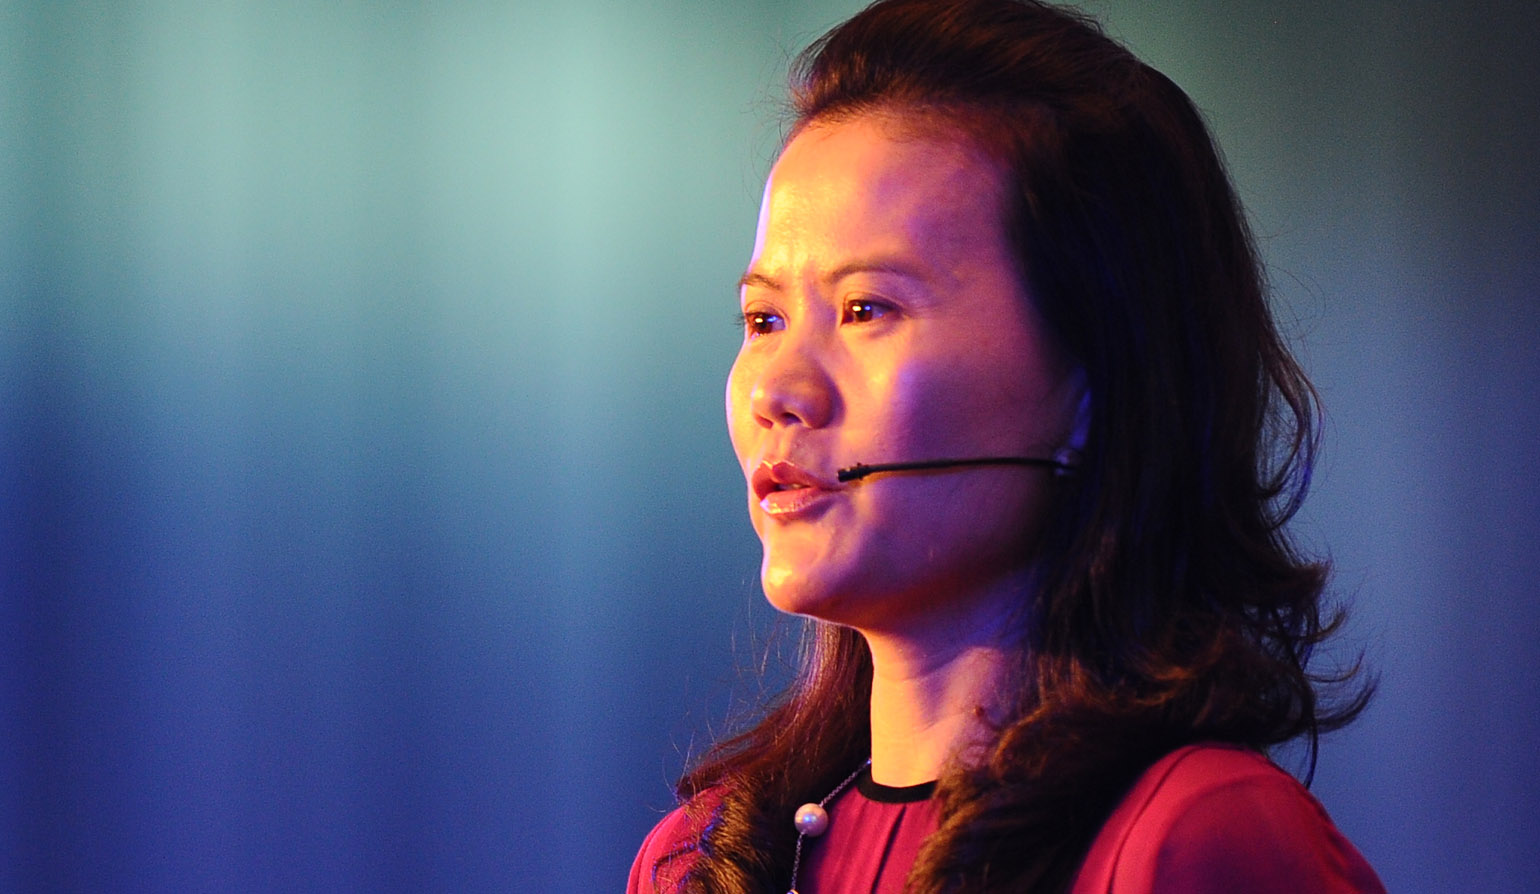 Lucy Peng, CEO, Ant Financial and Chief People Officer, Alibaba